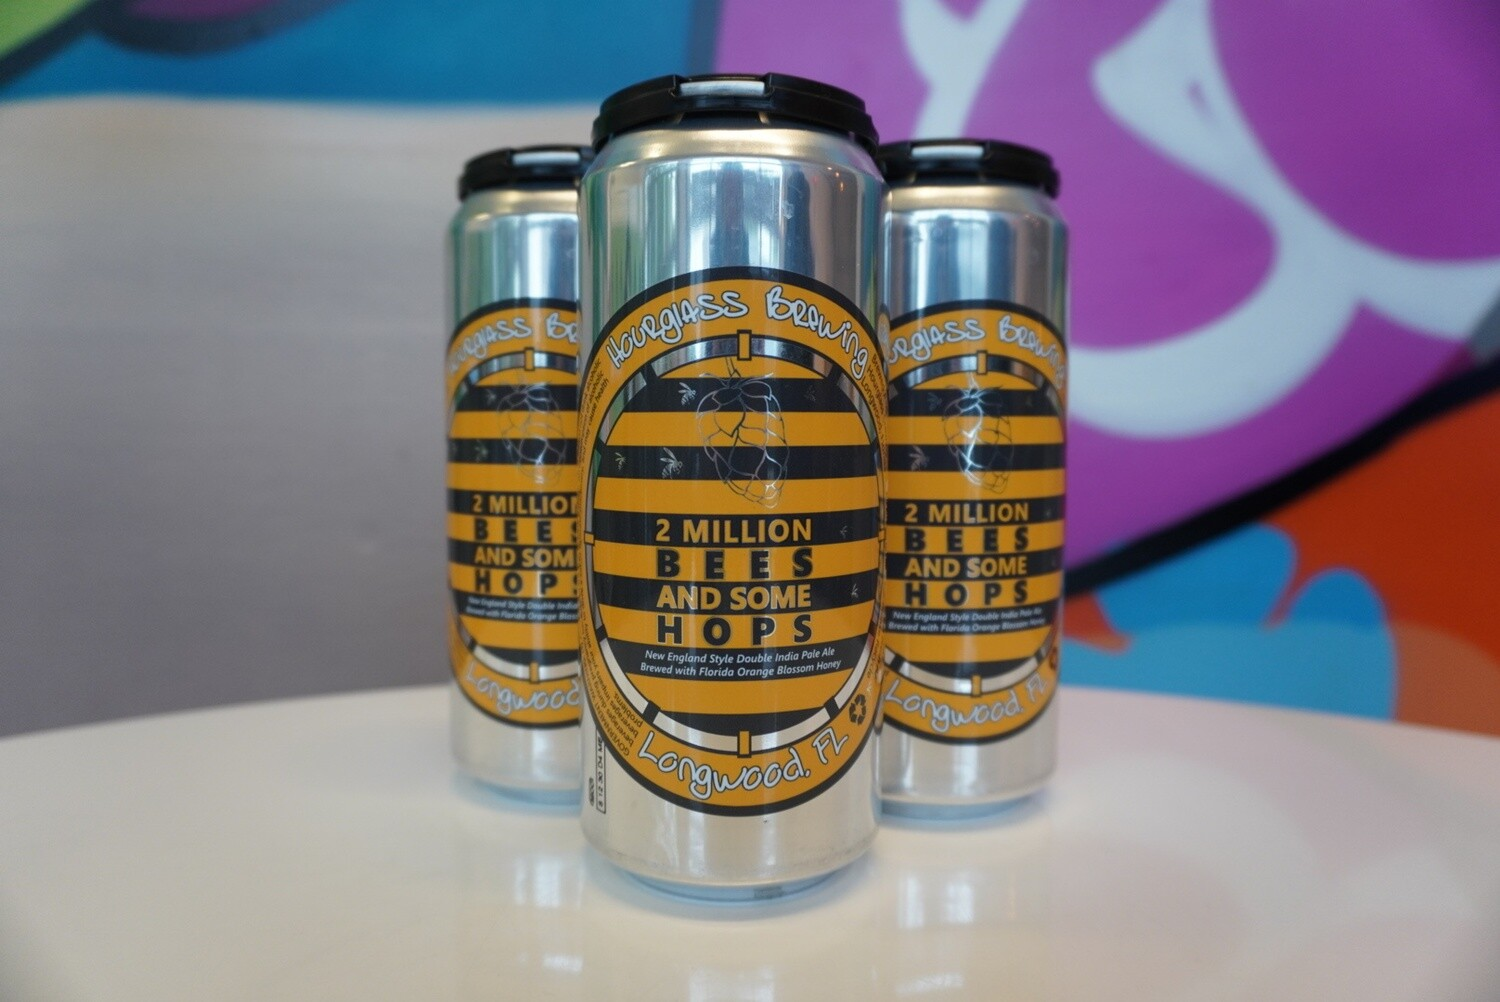 Hourglass Brewing - 2 Million Bees - Double New England IPA - 8.5% ABV - 4 Pack